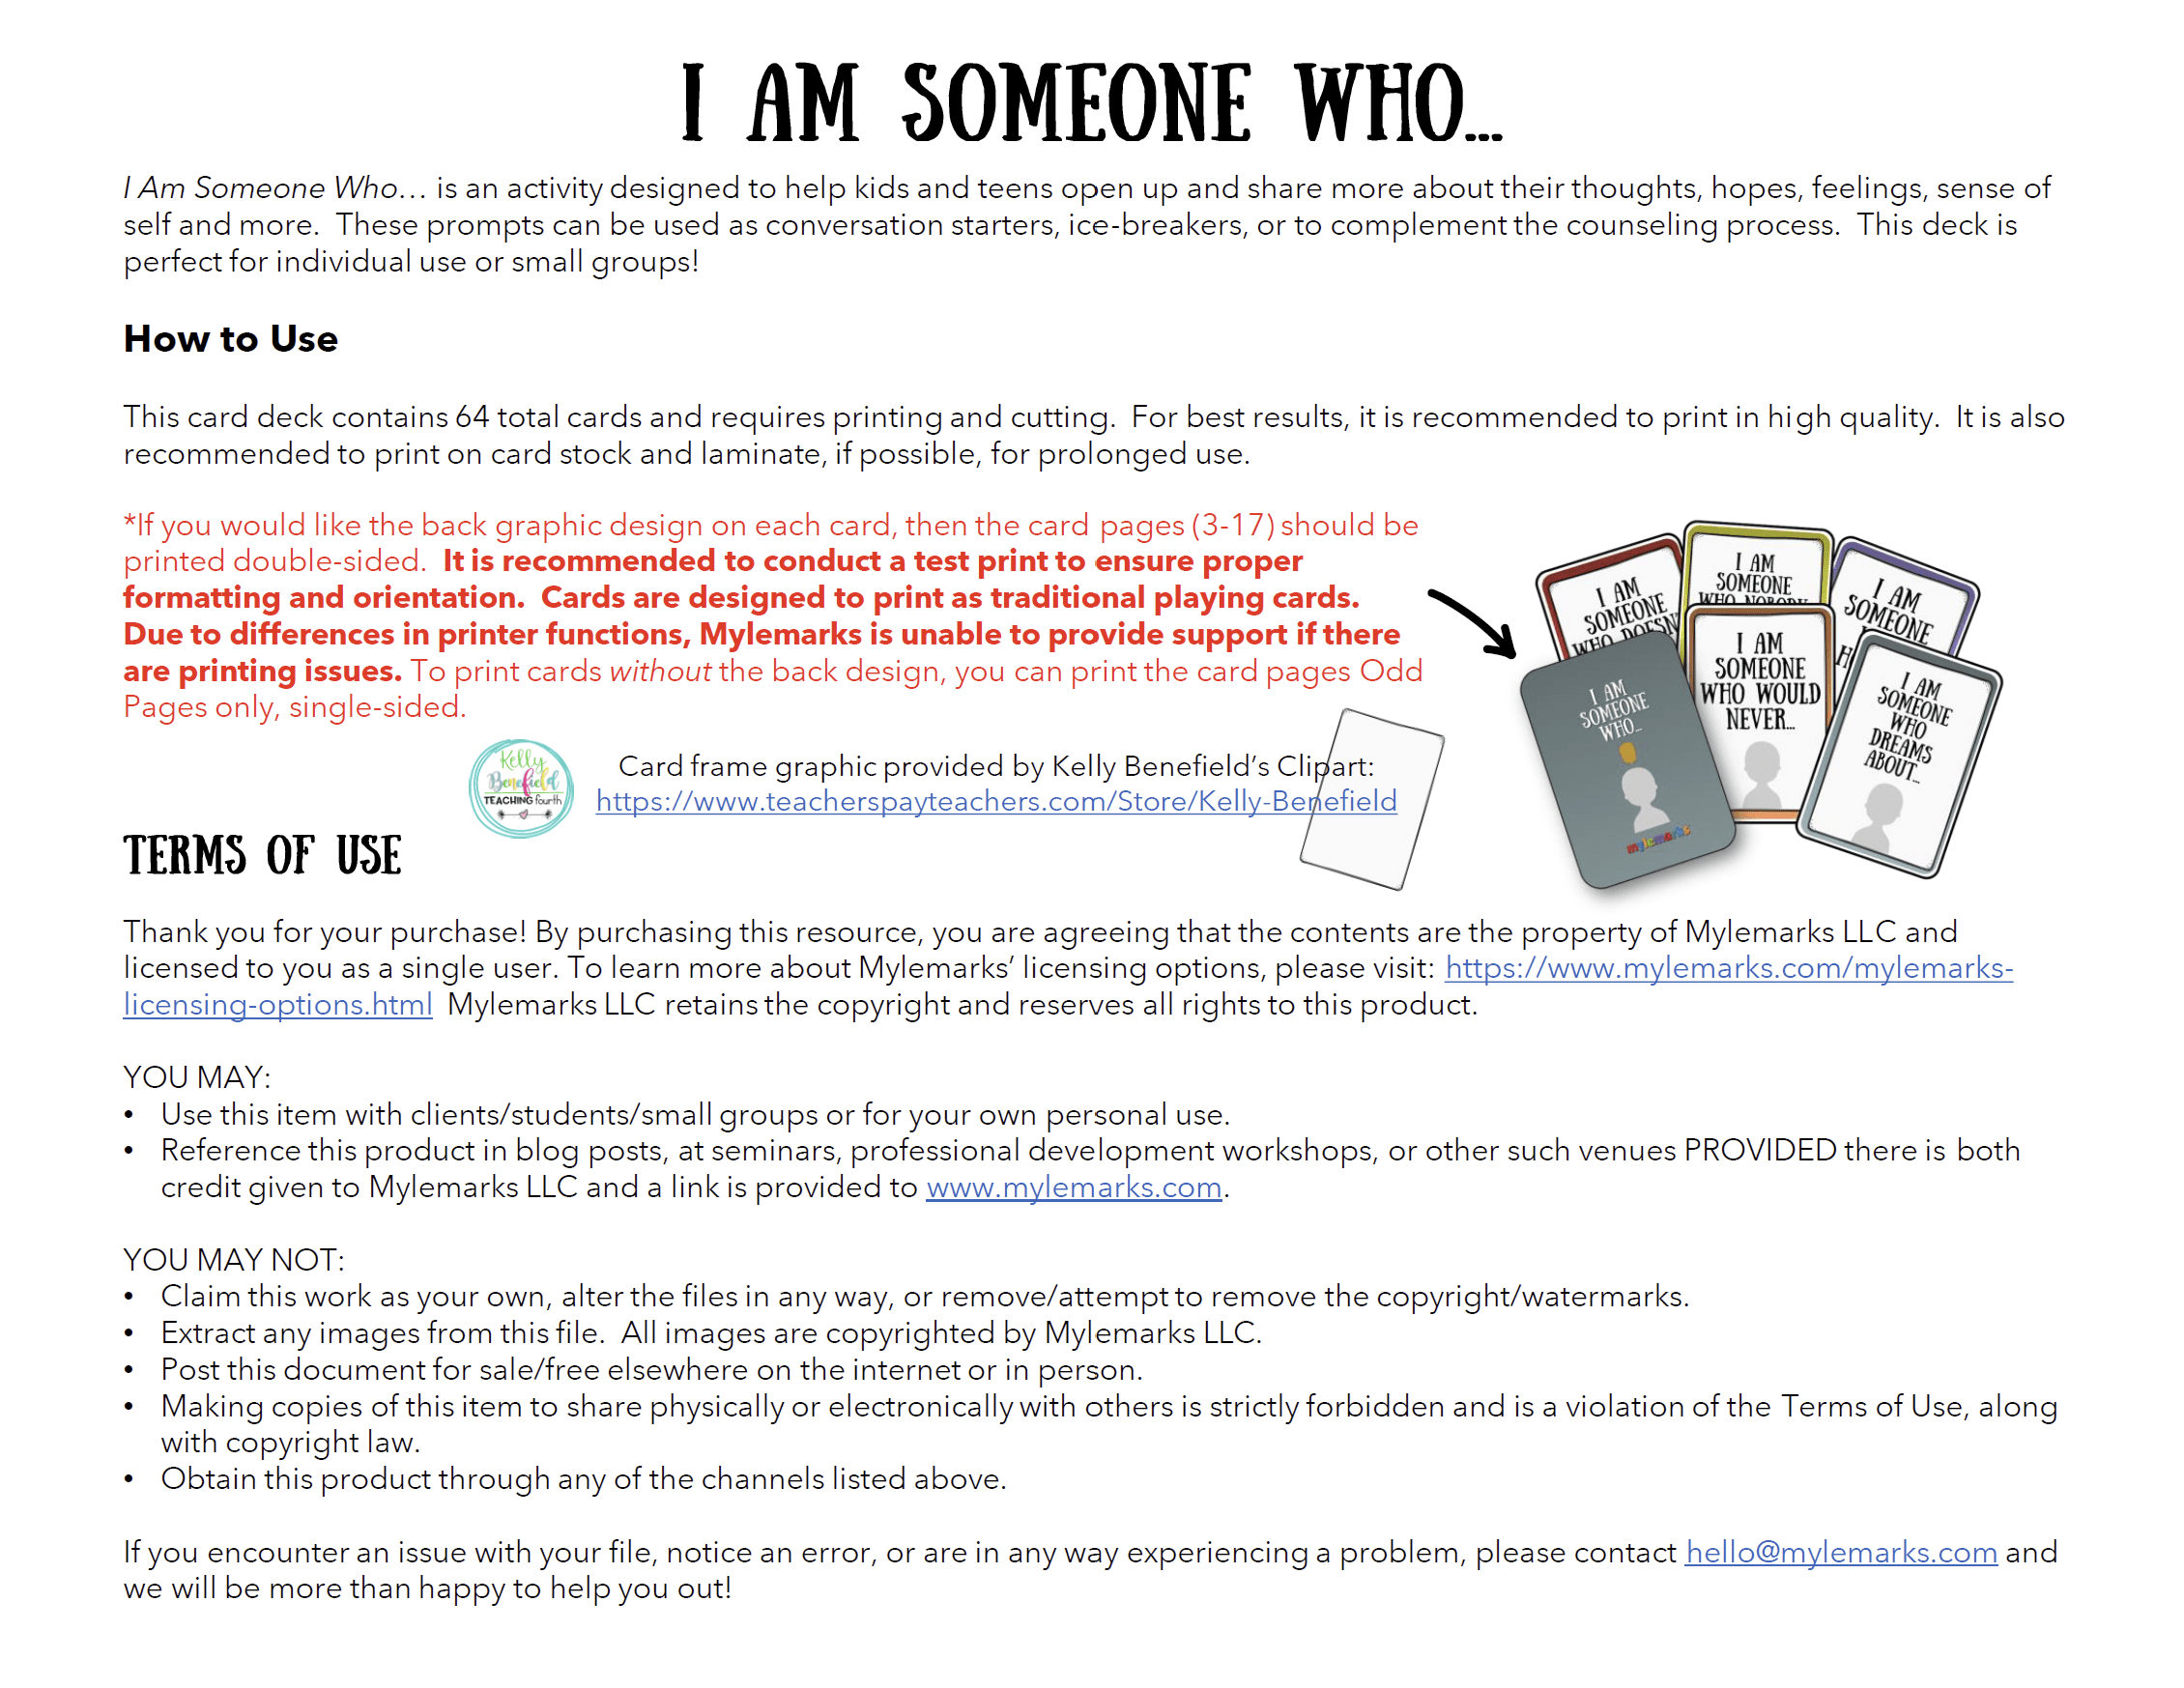 I Am Someone Who Cards